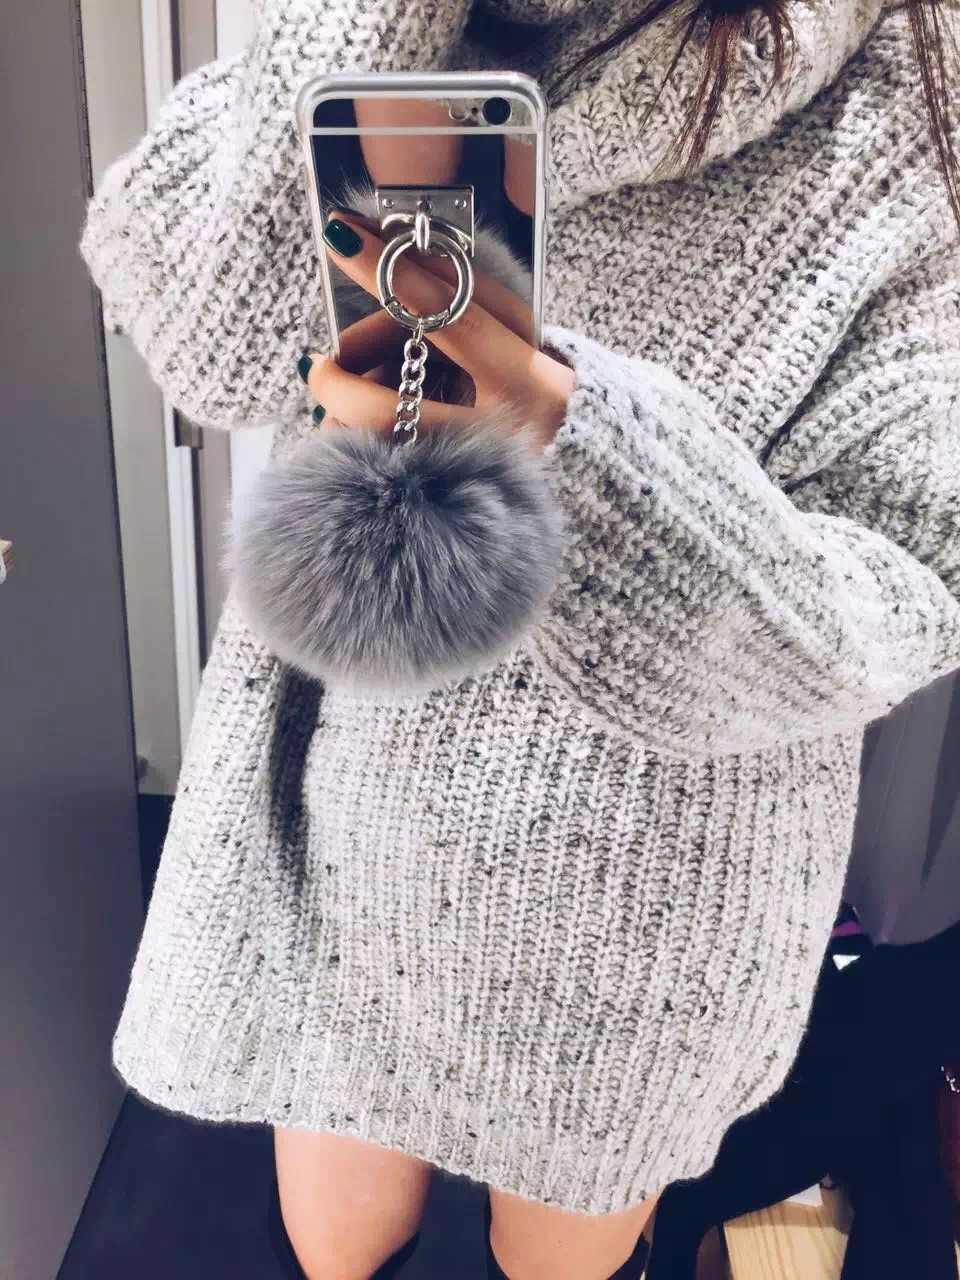 Dower Me Rabbit Fur Ball Tassel Mirror Case For Iphone <font><b>X</b></font> 8 6 6S 7 Plus 5S 4S Samsung Galaxy Note 8 5 <font><b>4</b></font> <font><b>3</b></font> S5/<font><b>4</b></font>/<font><b>3</b></font> S8/7/6 Edge Plus